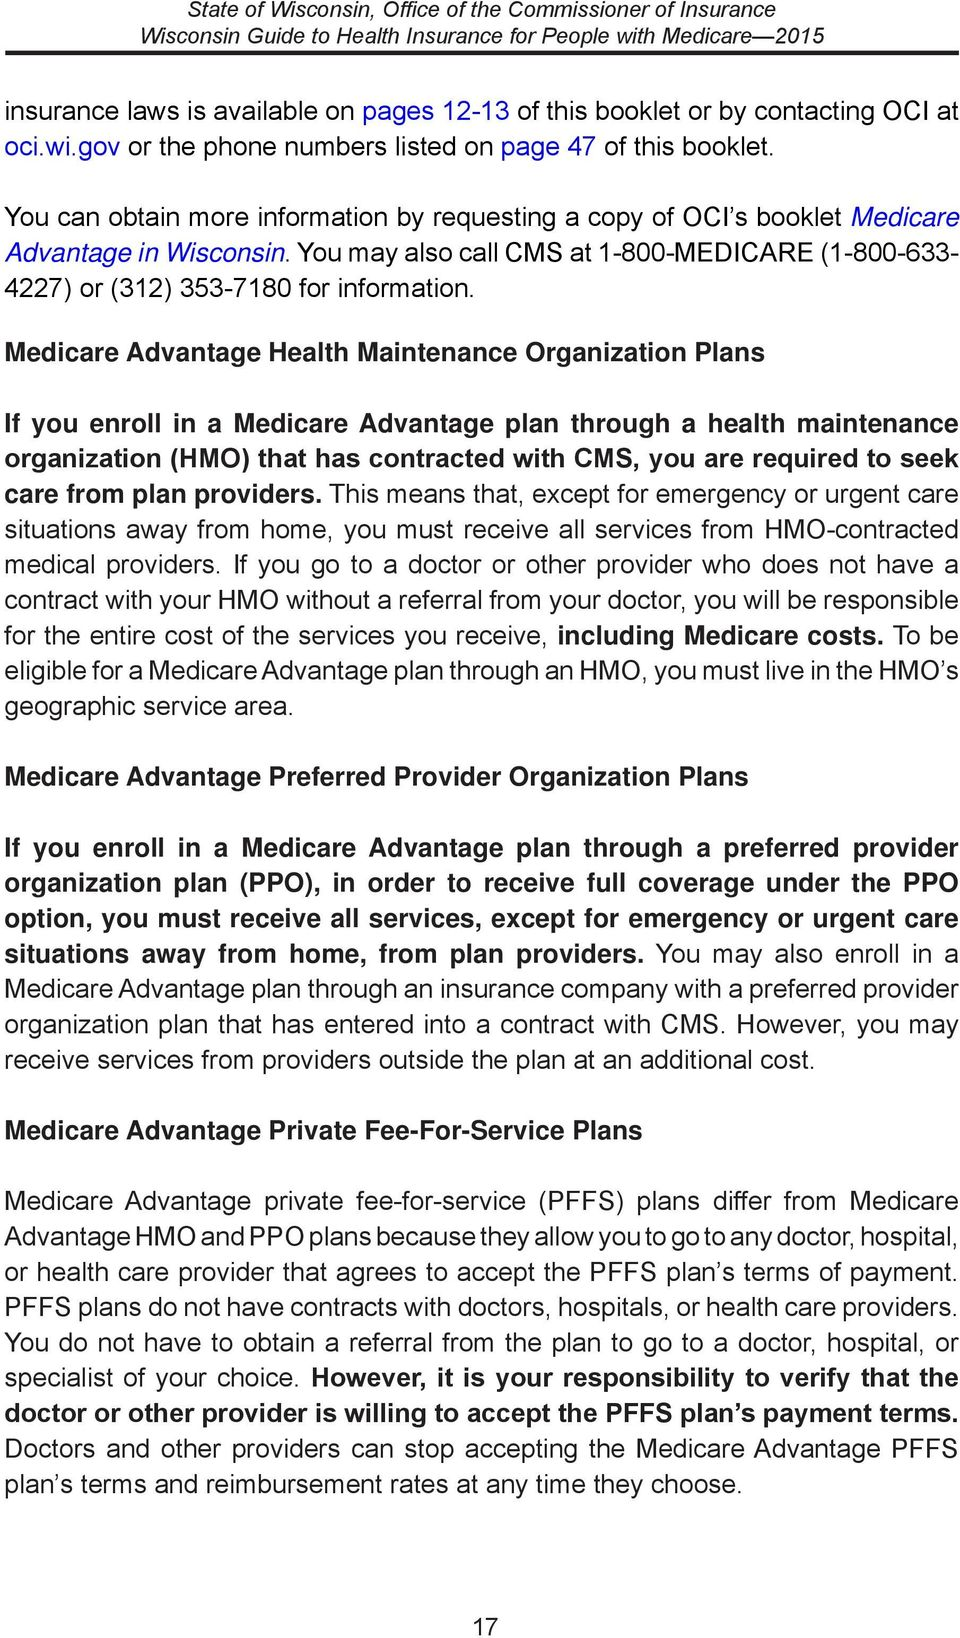 Medicare Advantage Health Maintenance Organization Plans If you enroll in a Medicare Advantage plan through a health maintenance organization (HMO) that has contracted with CMS, you are required to